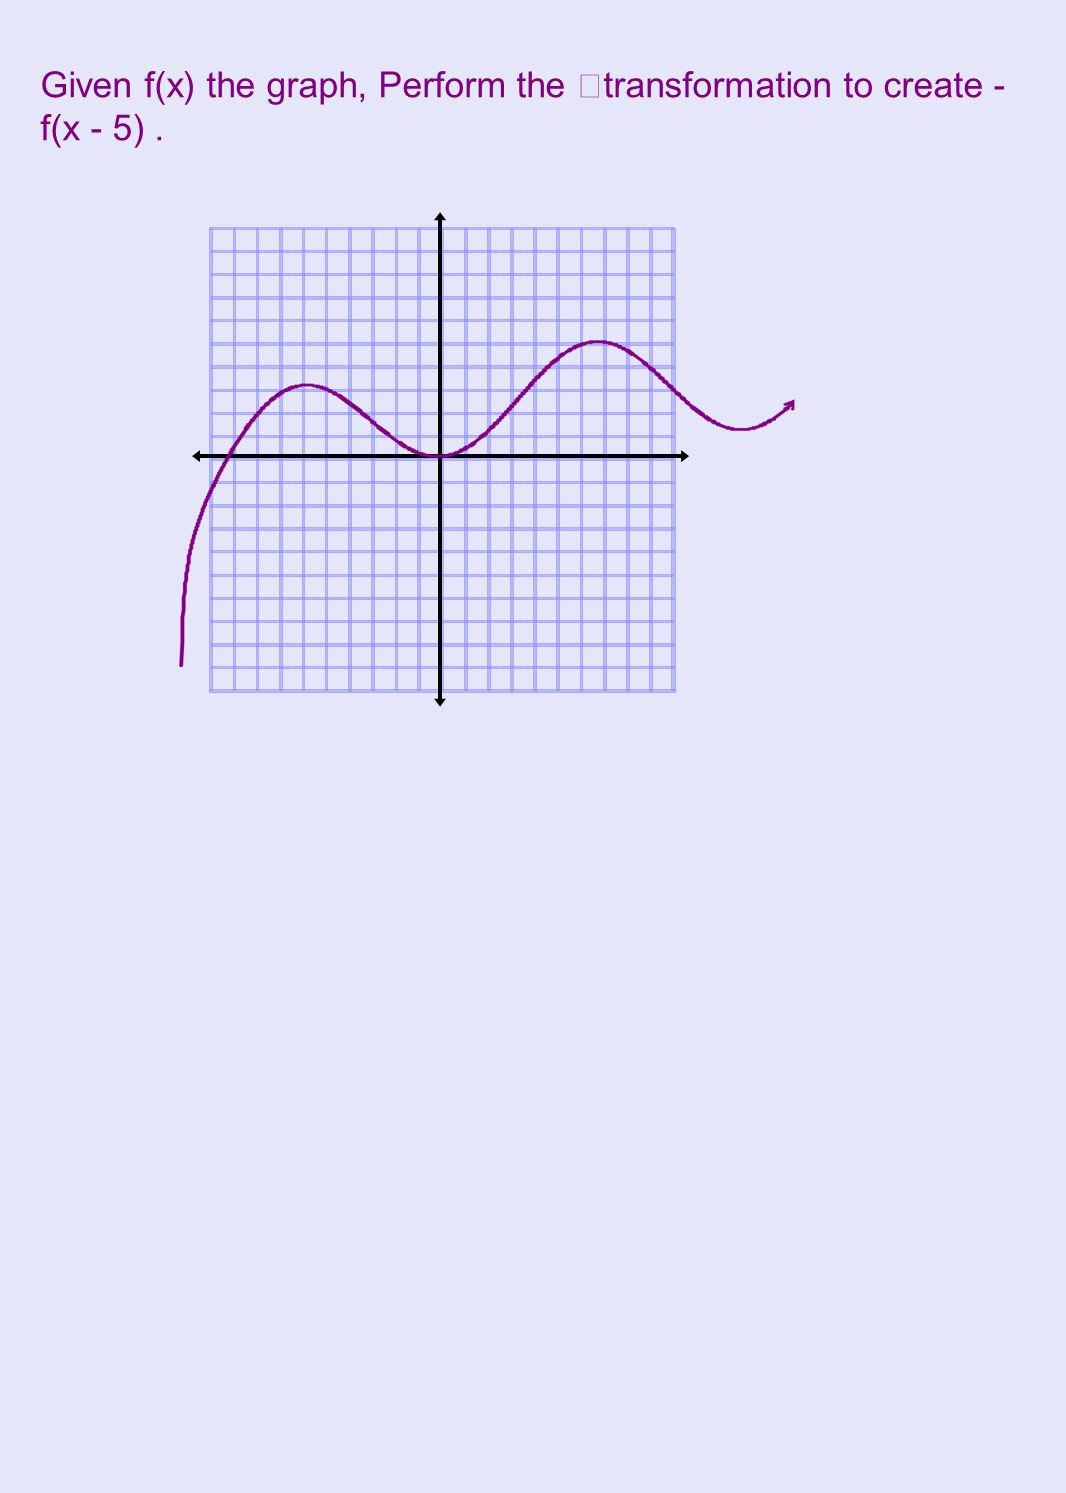 Given f(x) the graph, Perform the transformation to create - f(x - 5).